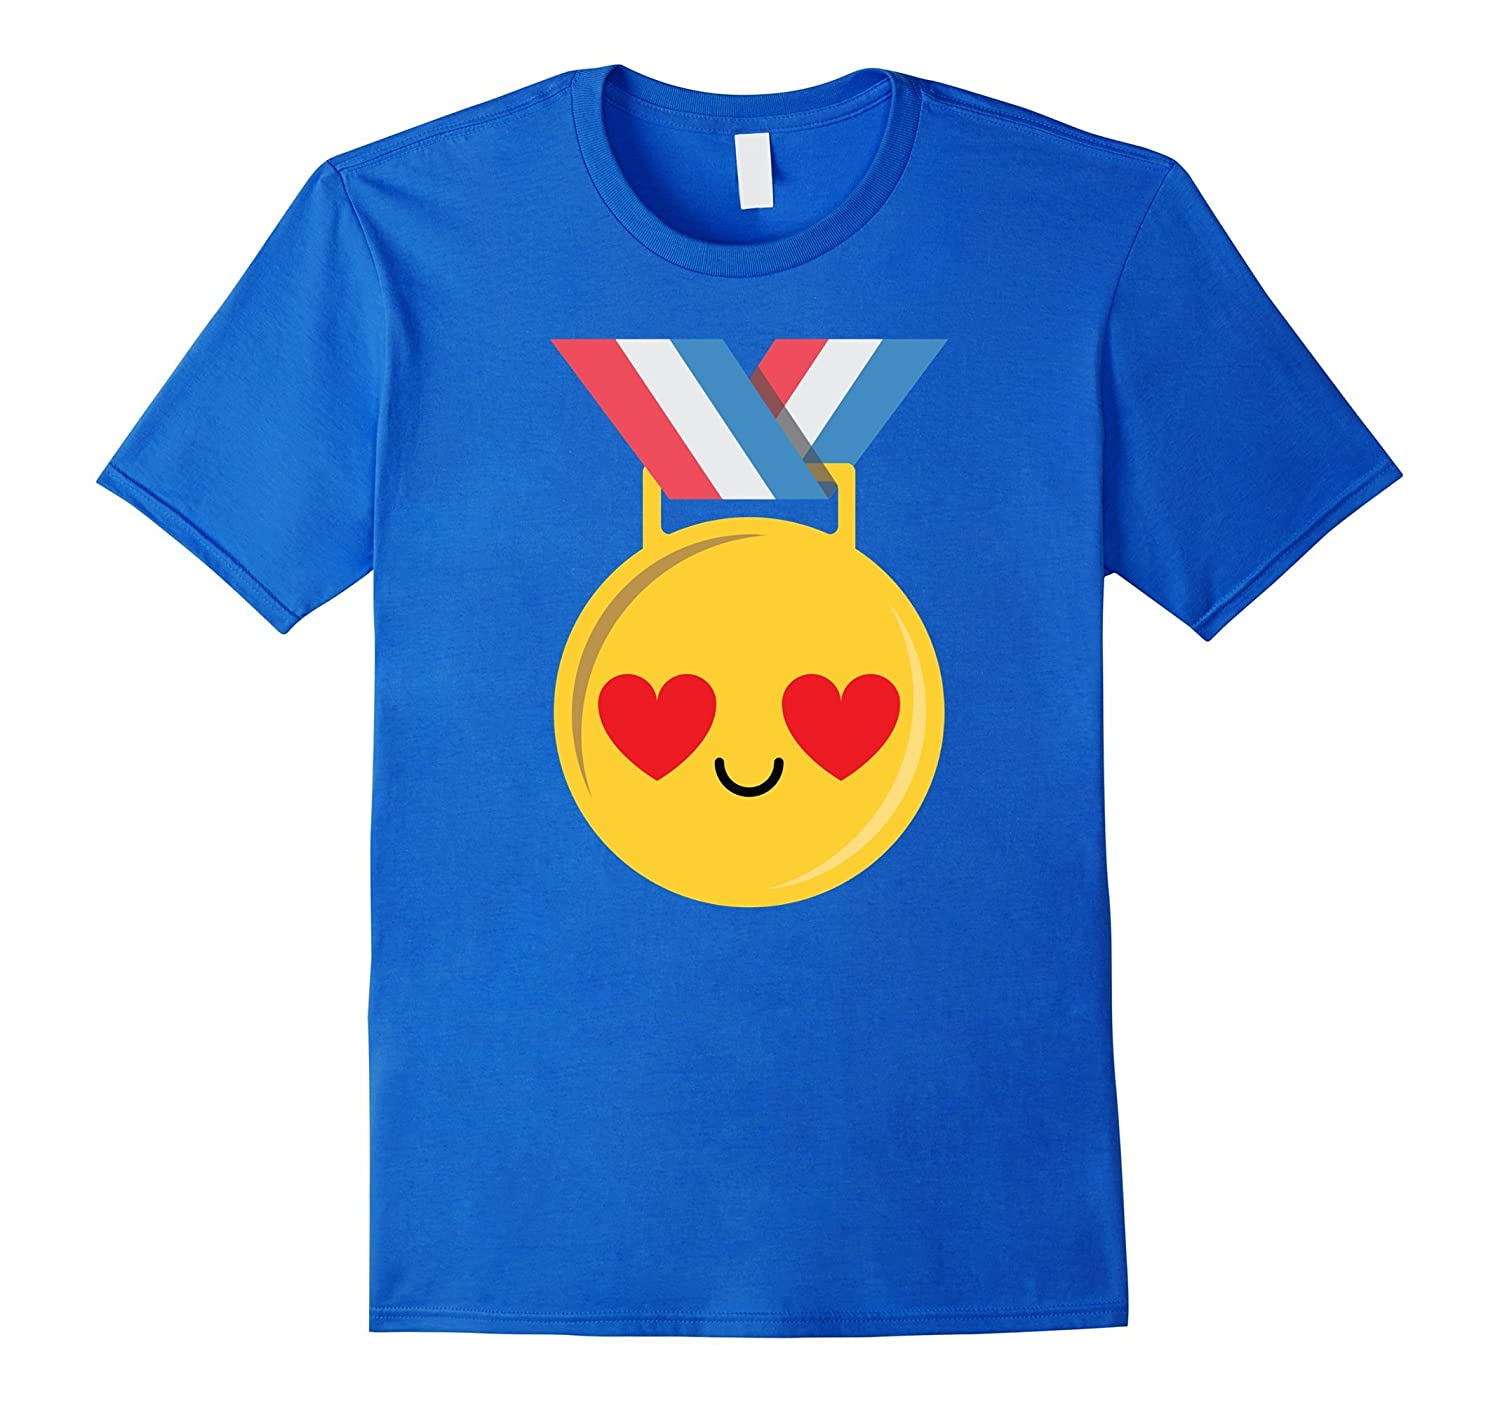 Gold Medal Emoji Heart Eye Shirt T-Shirt Congratulation Tee